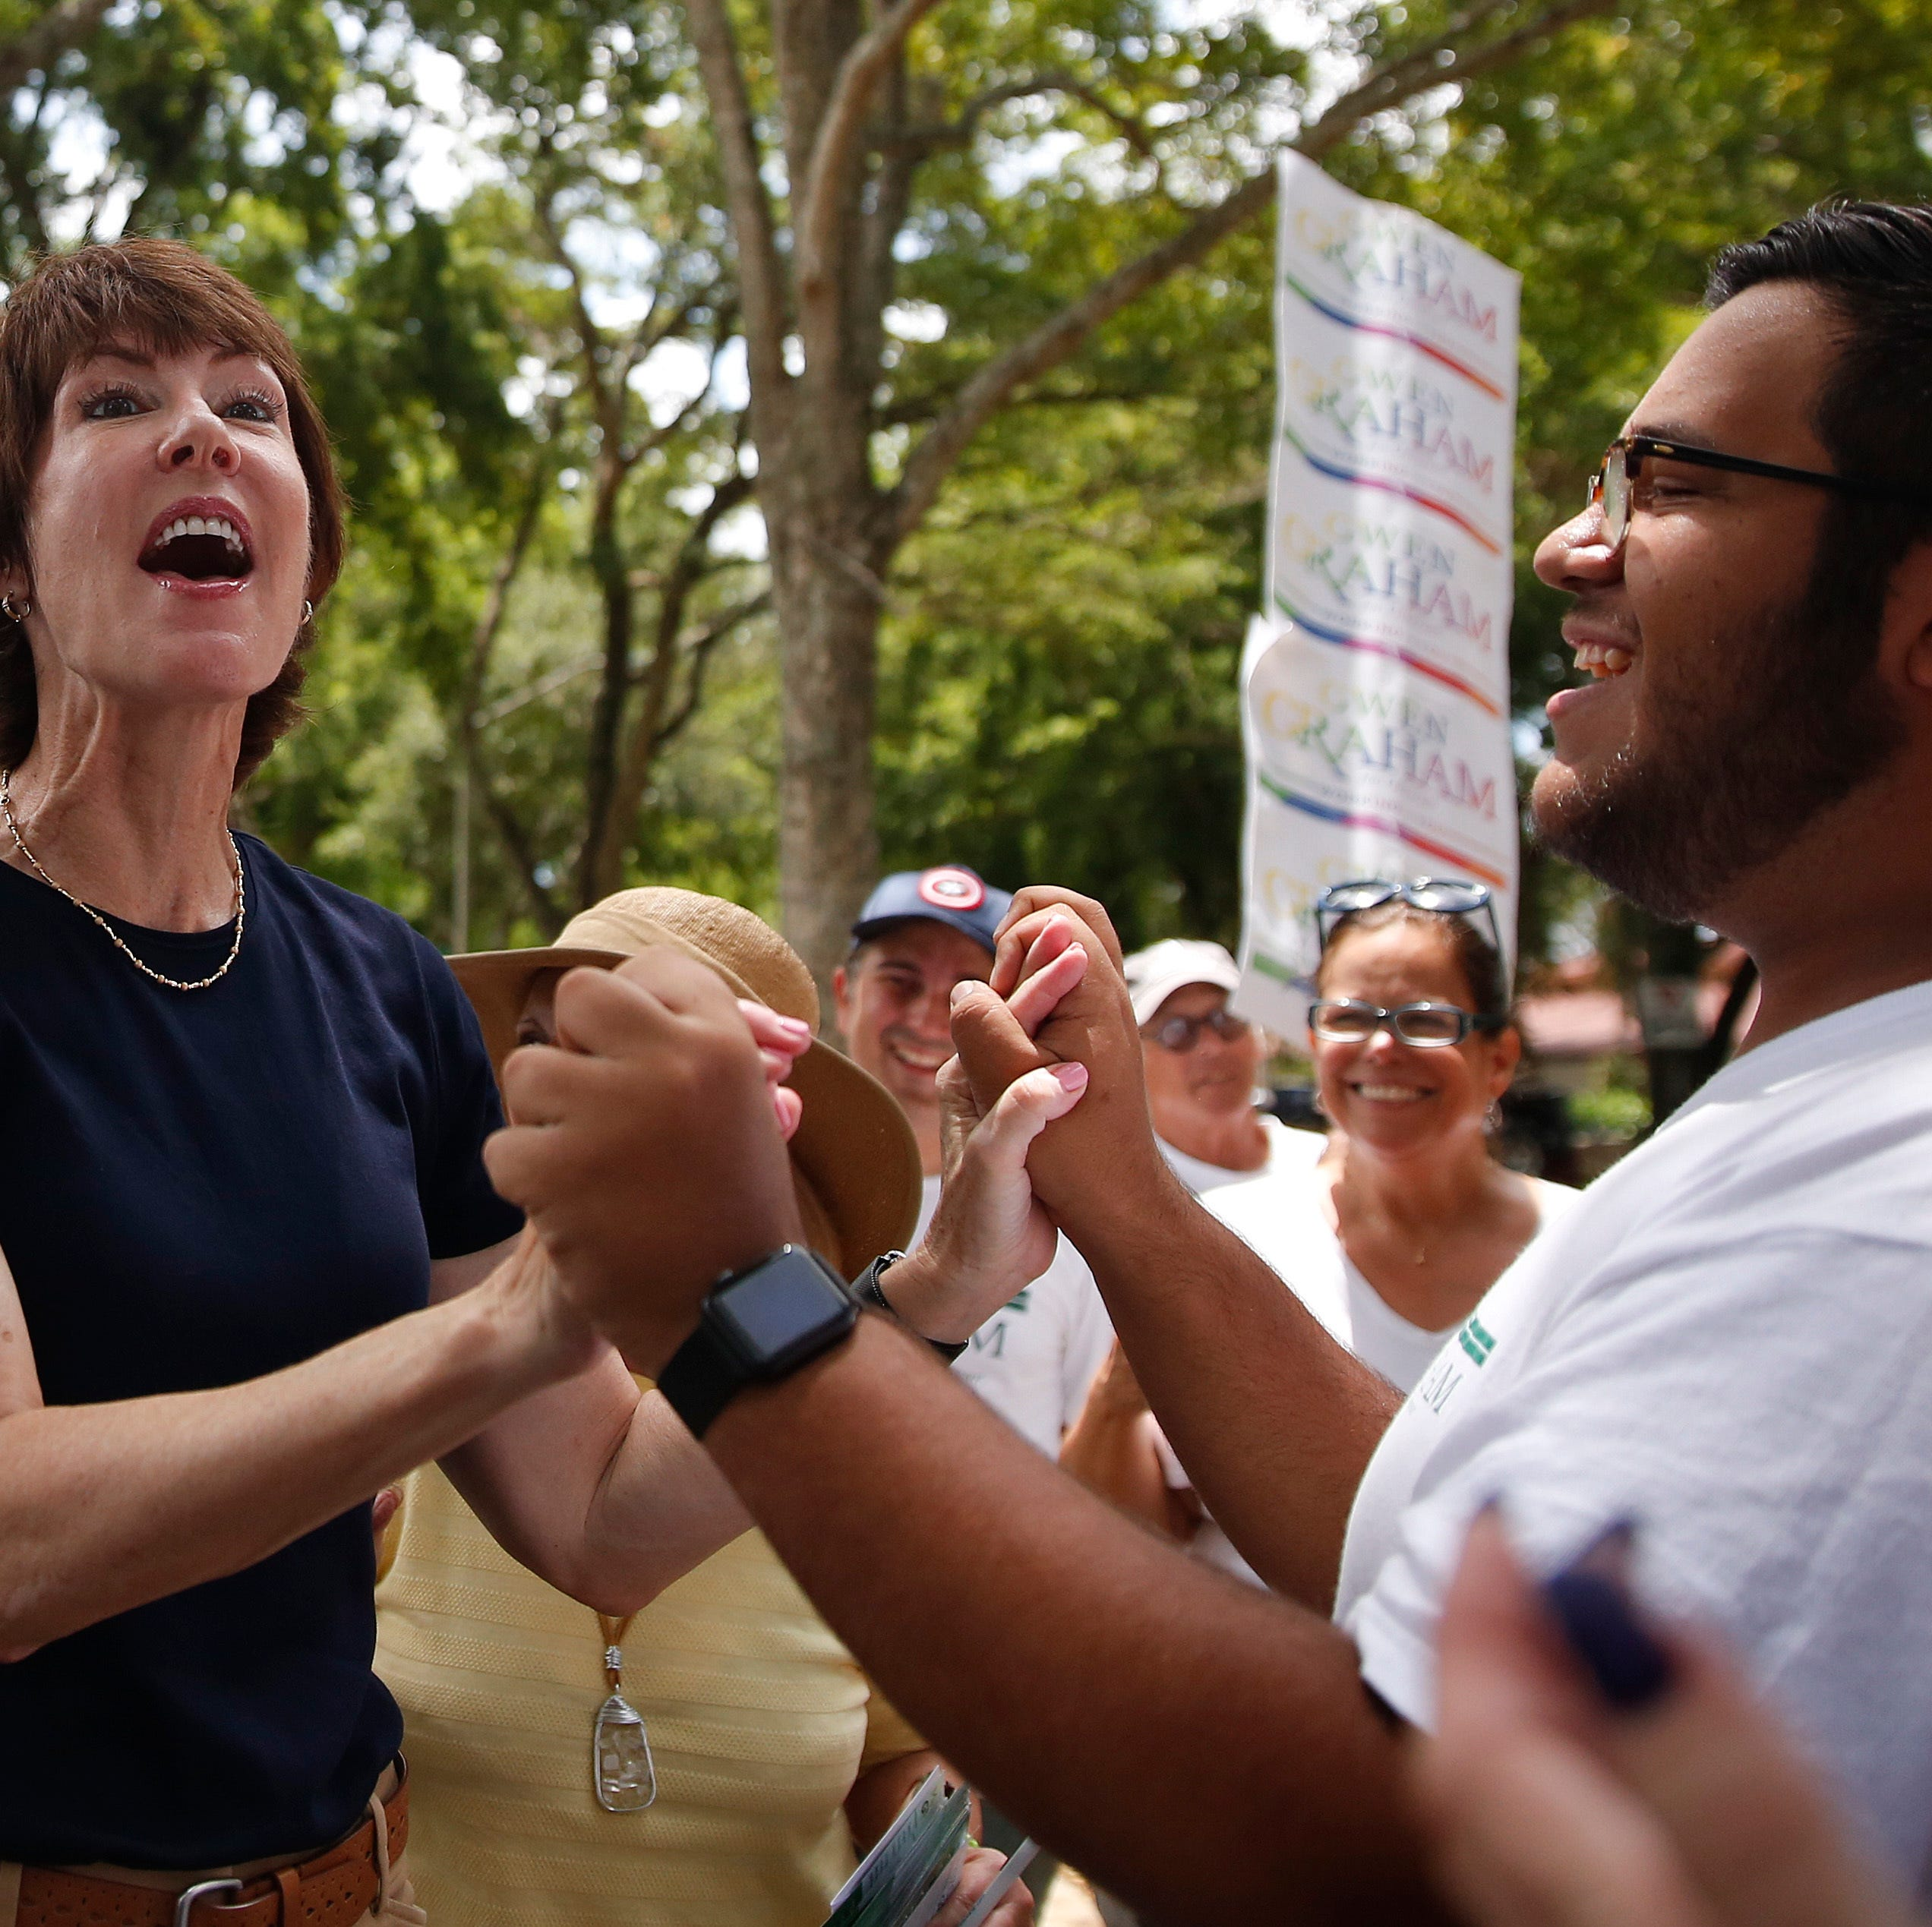 Democratic candidates bring diversity to Florida governor's race